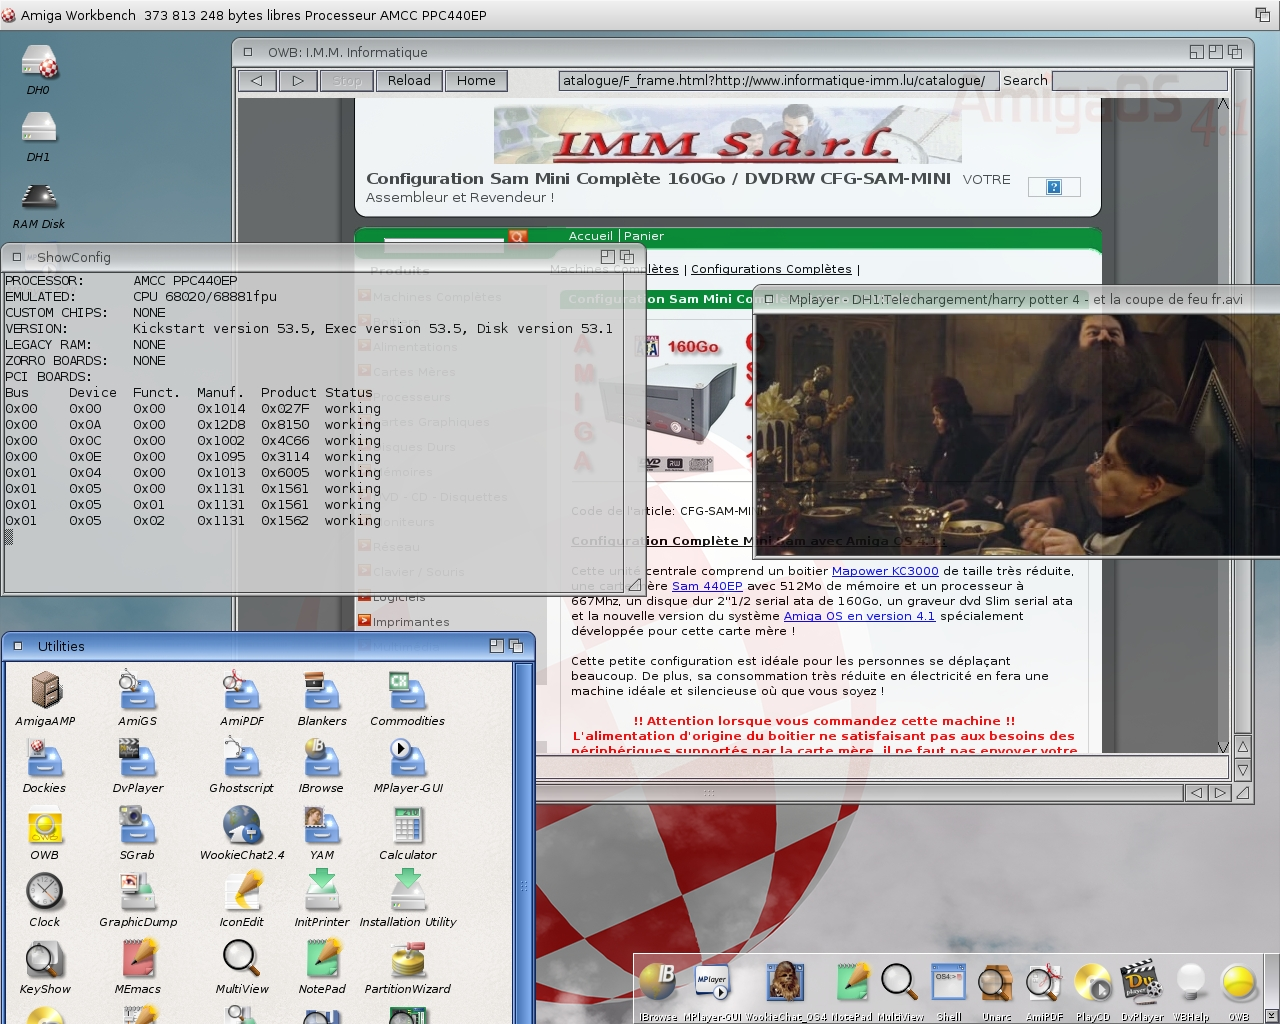 IntuitionBase - Your Guide To AmigaOS4 x And The AmigaOne